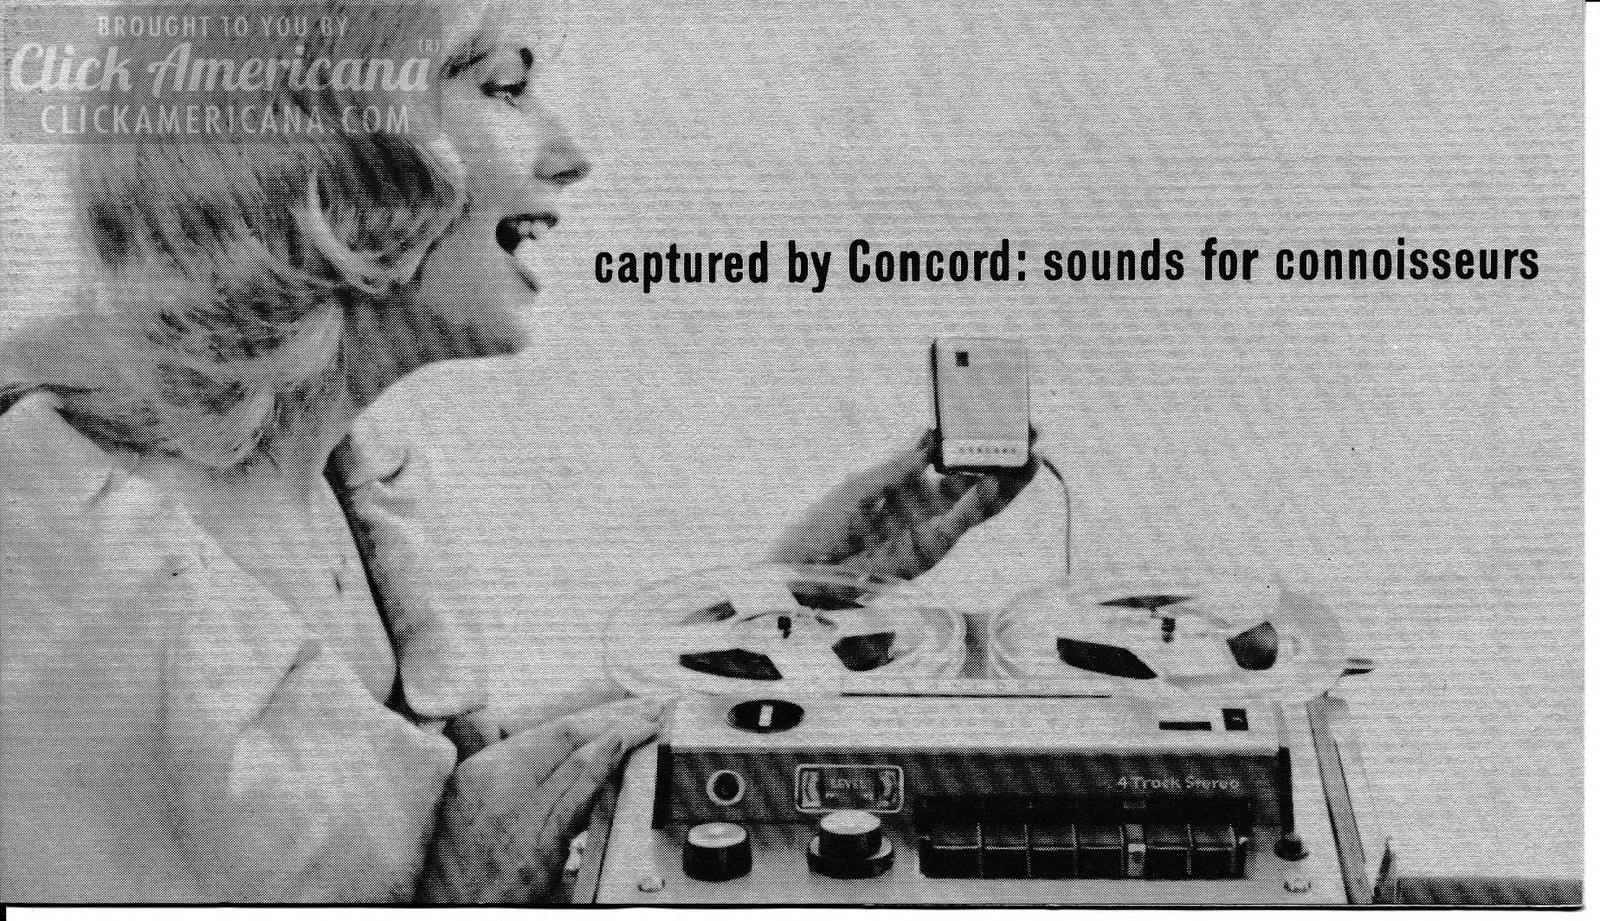 Concord 4-track tape players - 60s